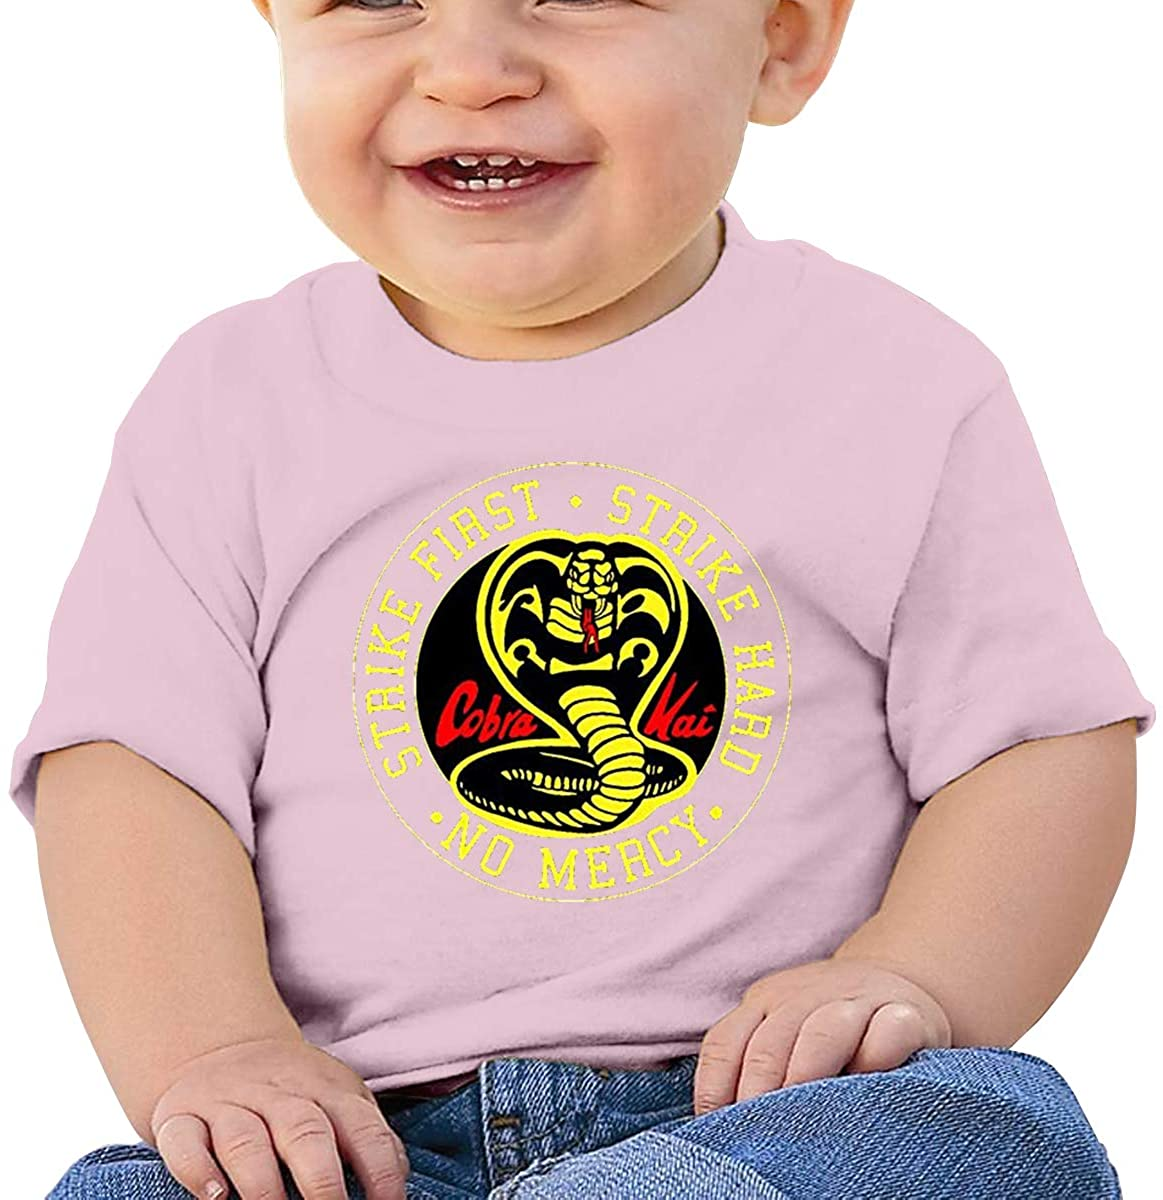 6-24 Months Boy and Girl Baby Short Sleeve T-Shirt Cobra Kai Karate Dojo Original Minimalist Style Pink